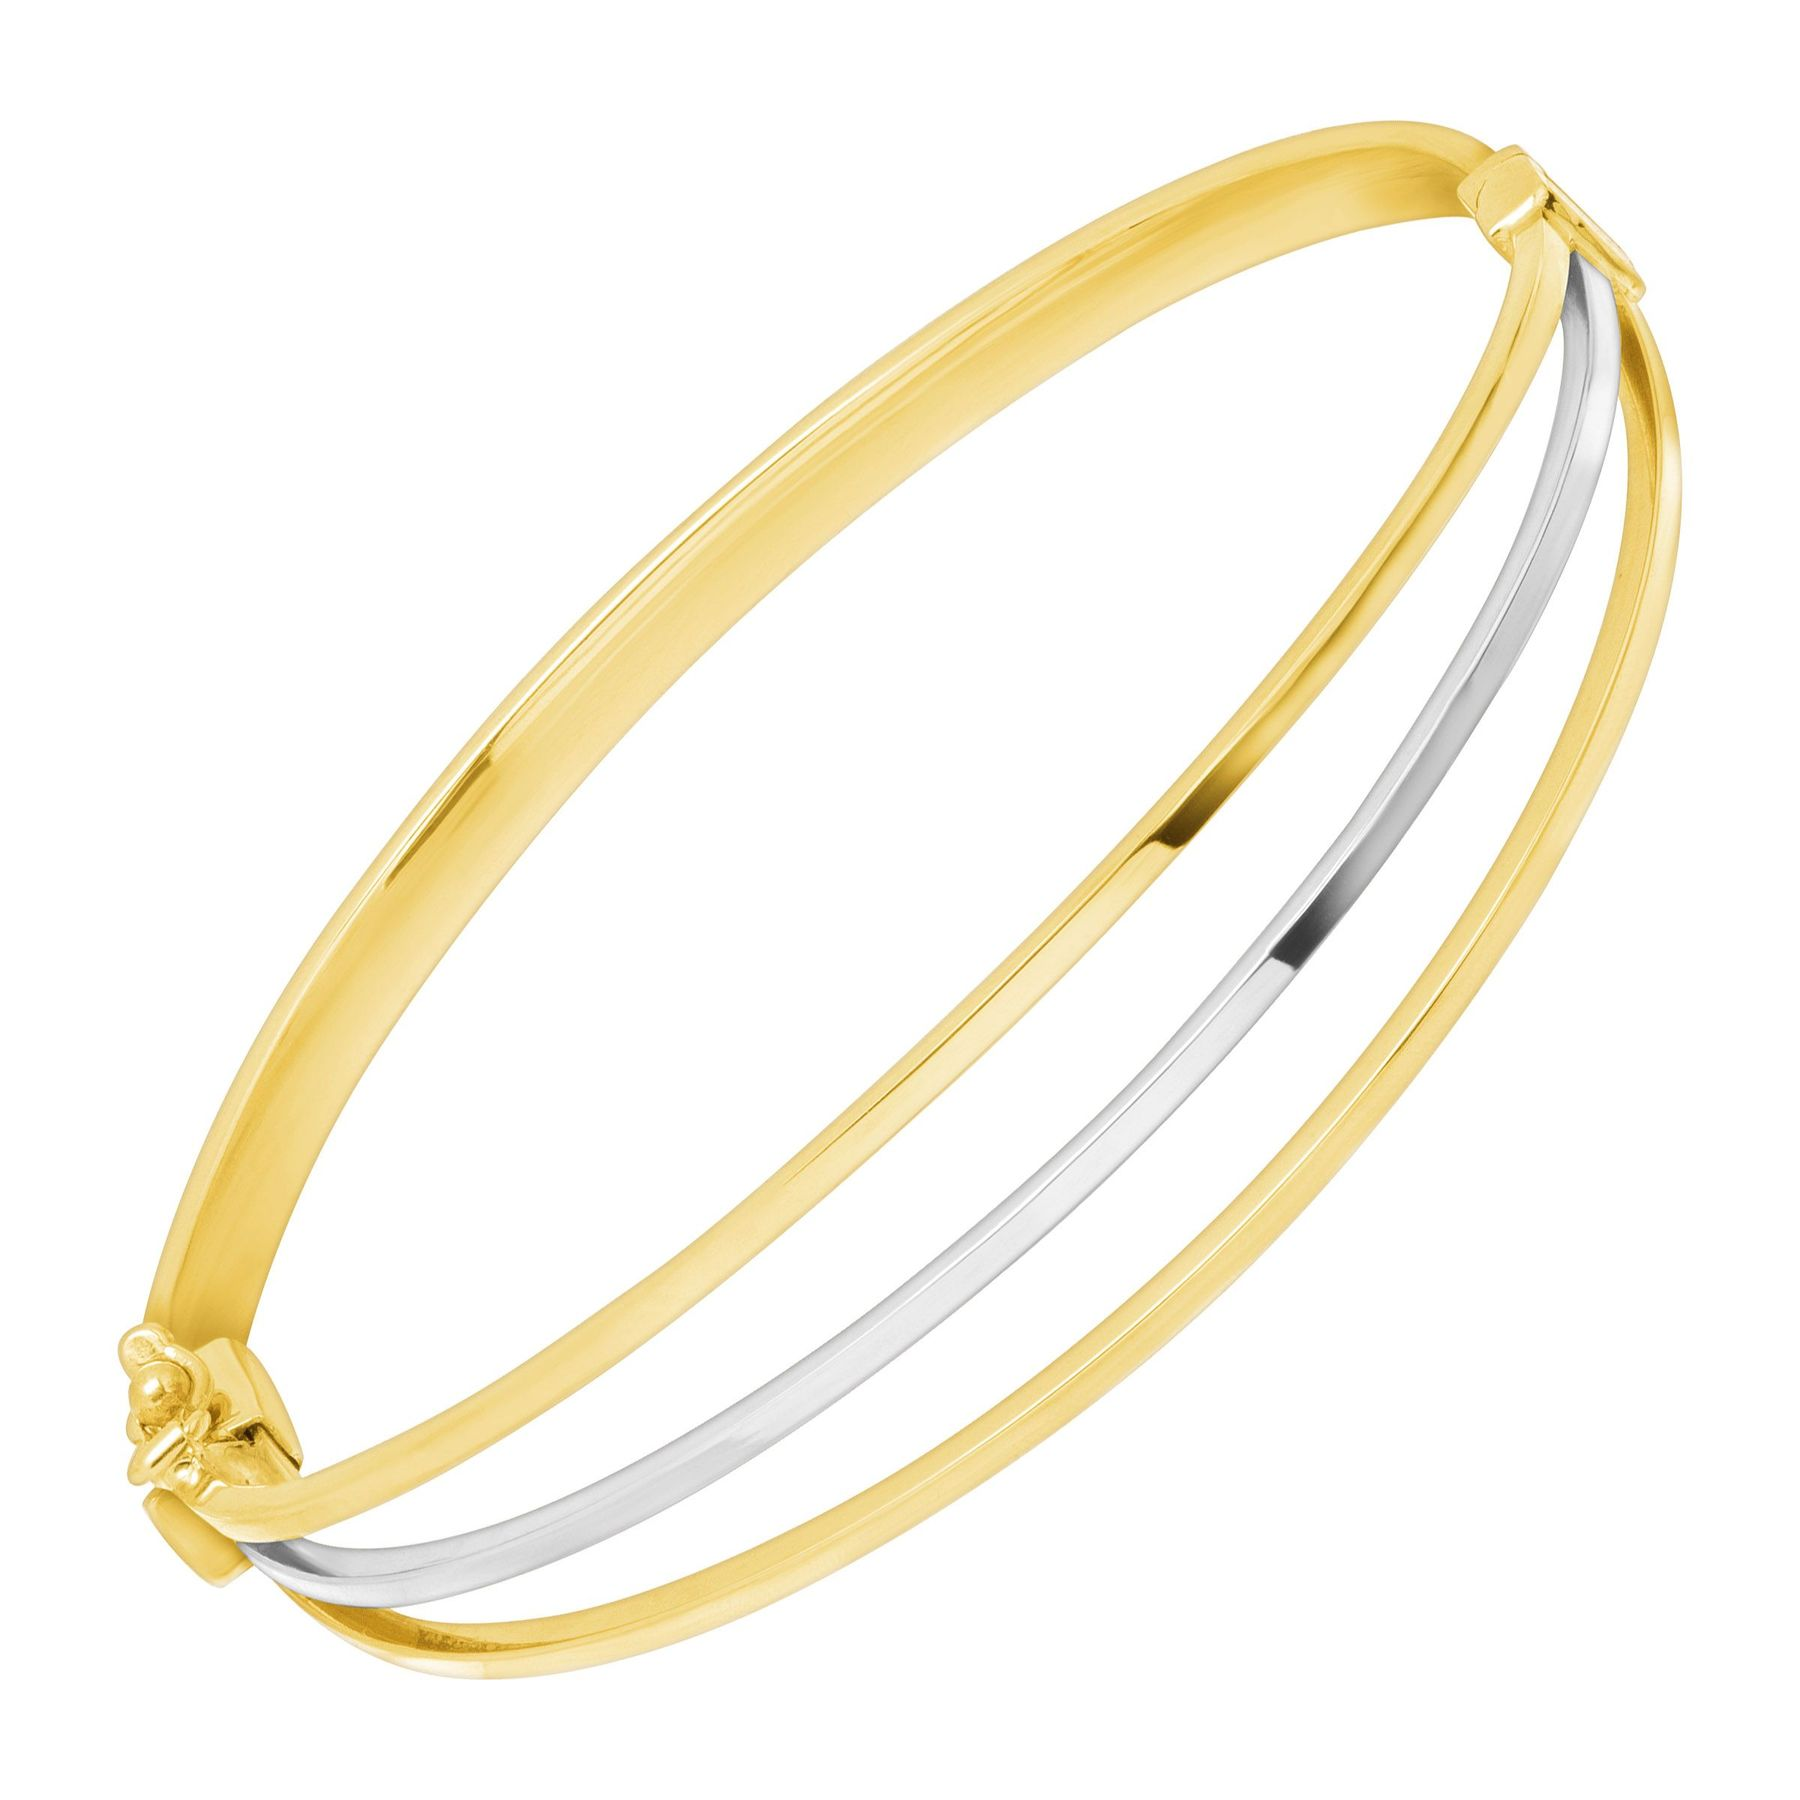 popular bracelet online bangle gioielli with llumins yellow diamond bangles shop maschio milano ice solitaire gold